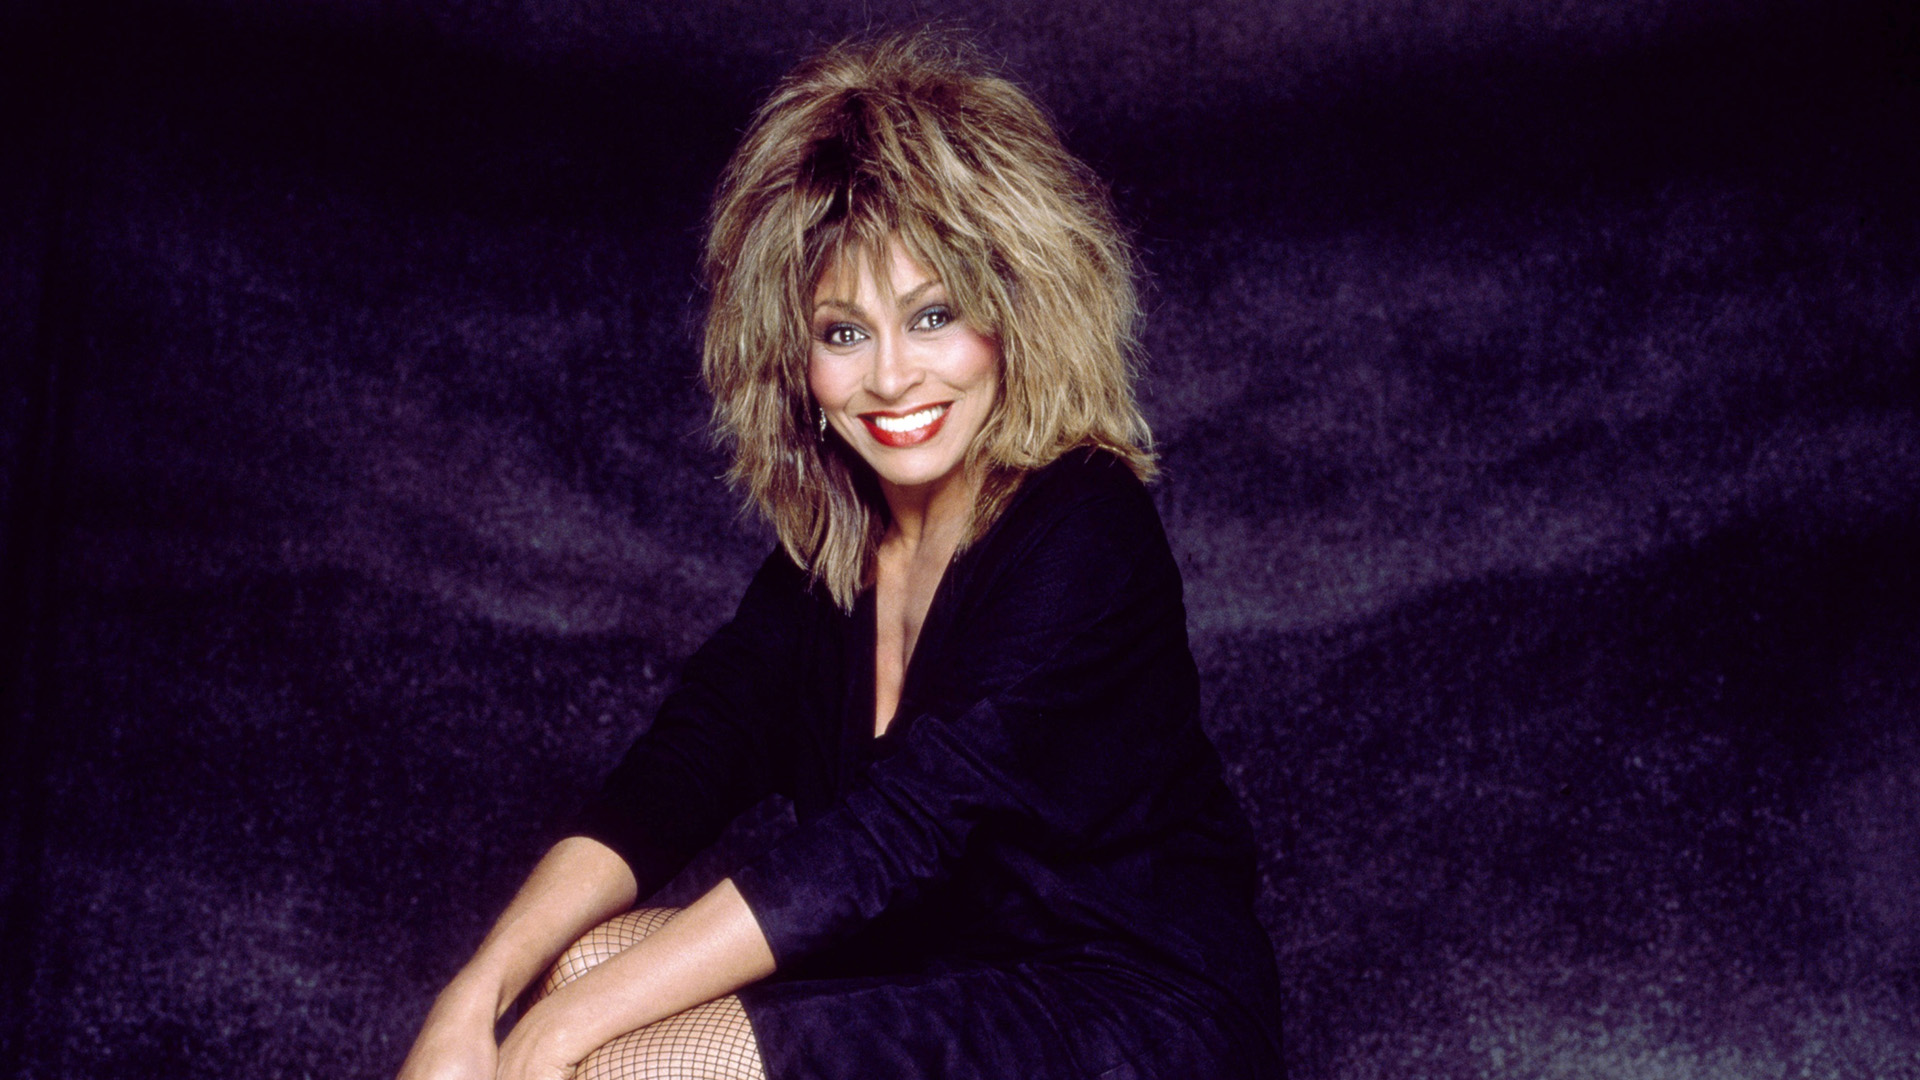 Tina Turner HD Wallpapers